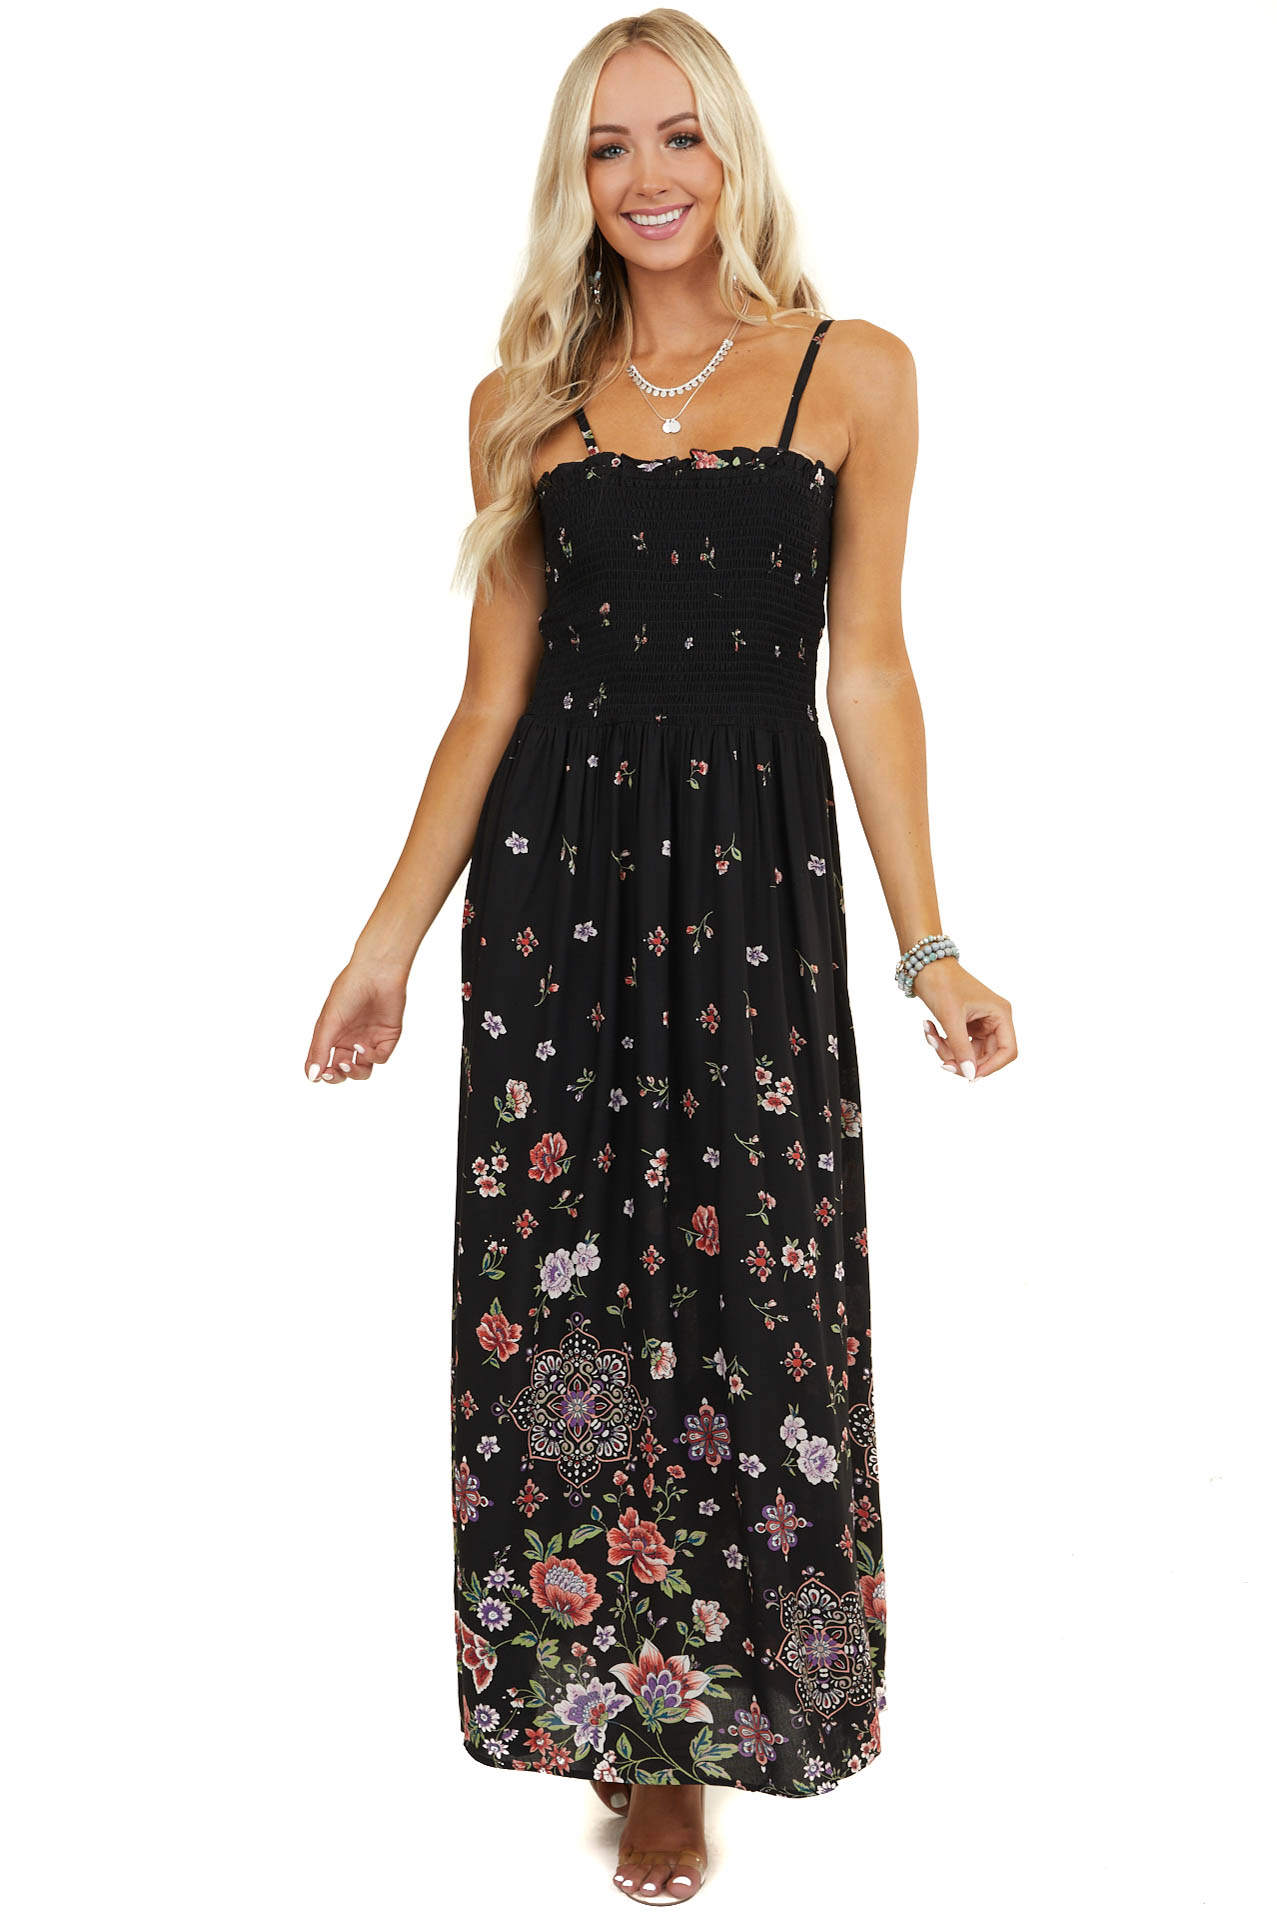 Black Floral Print Sleeveless Maxi Dress with Smocked Bust